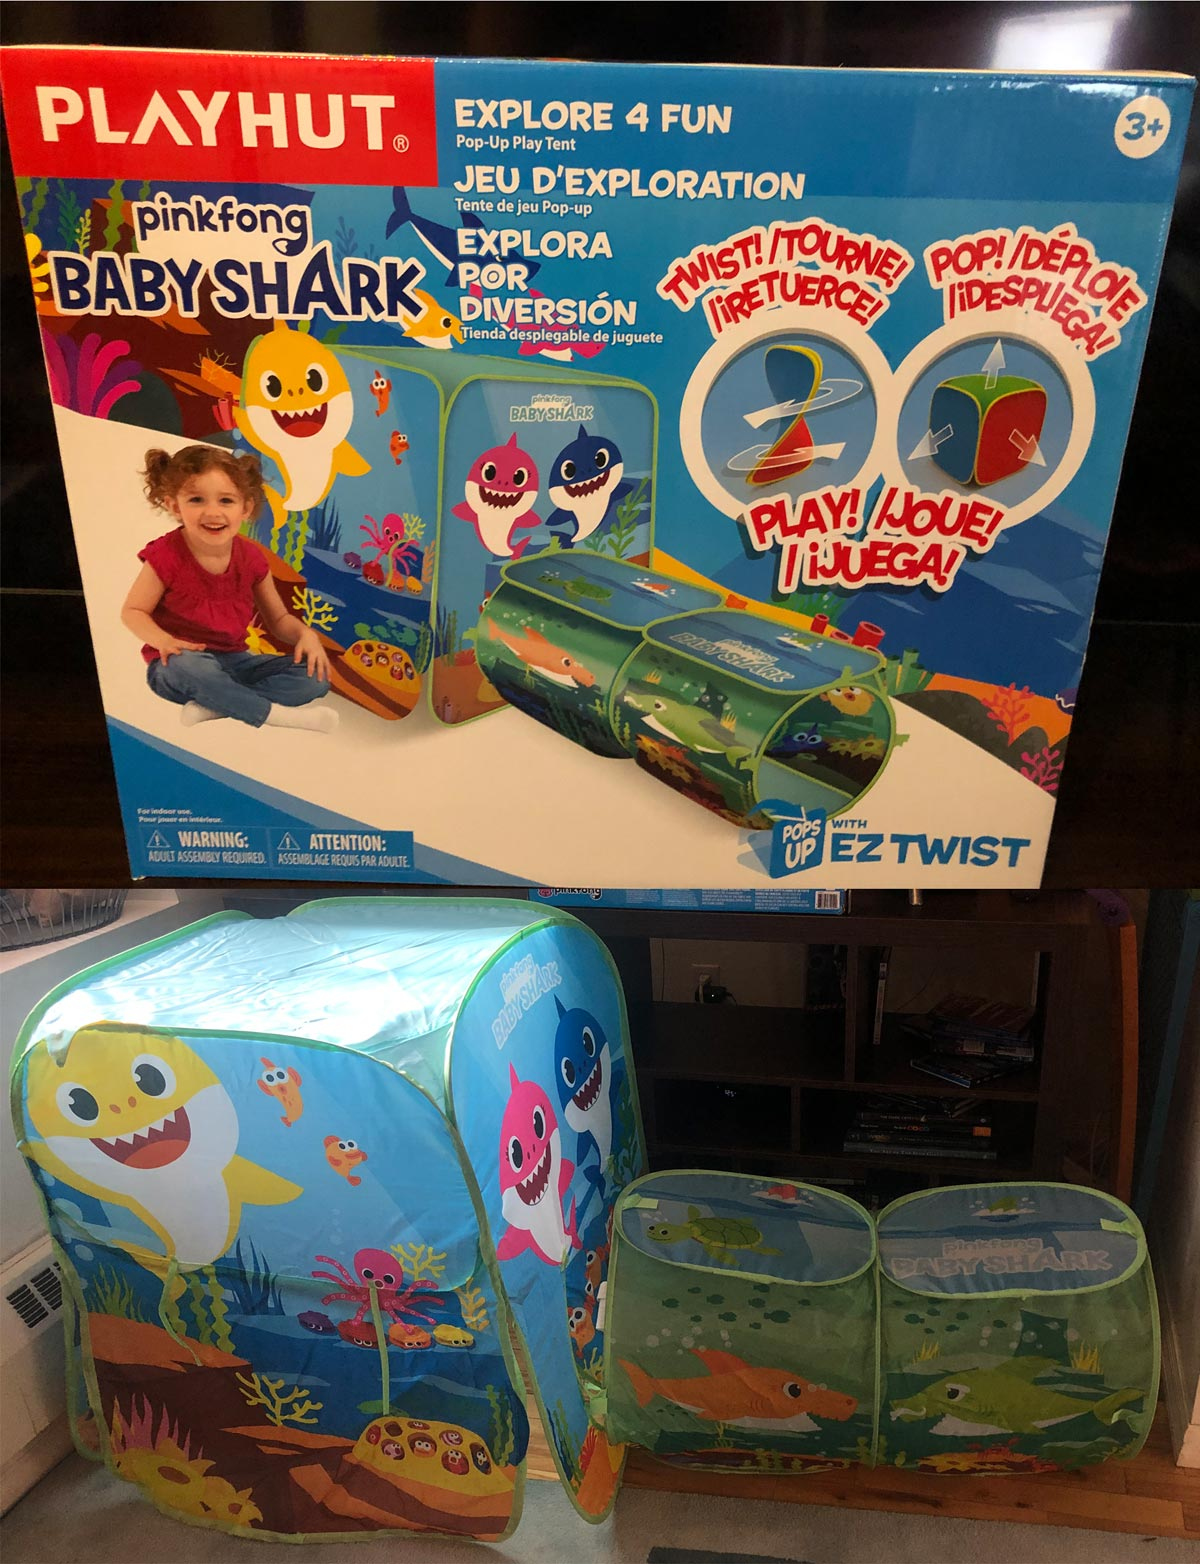 Playhut Baby Shark Explore 4 Fun Pop-Up Play Tent